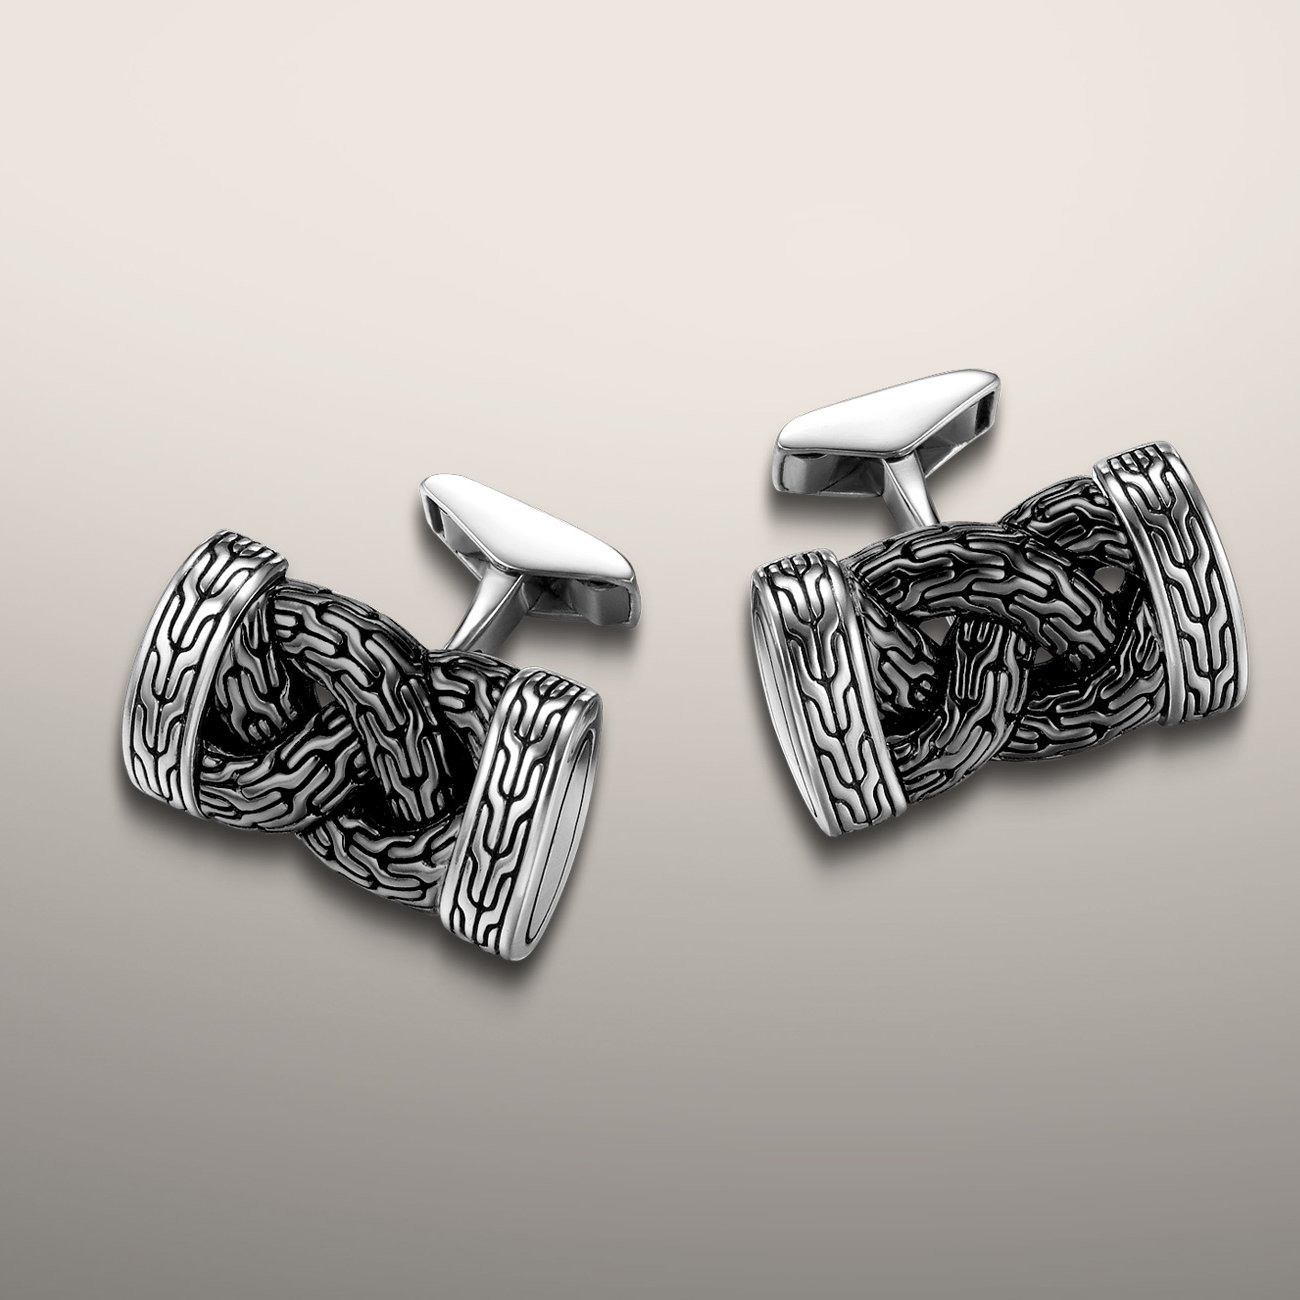 Two tone polished silver and anodized silver cufflinks. John Hardy's signature braided classic chain styling in contrasting colors. The dark and light makes this piece go with every shirt. Dress them up for a work meeting or dress them down for a cool flair to a sports shirt.  $395